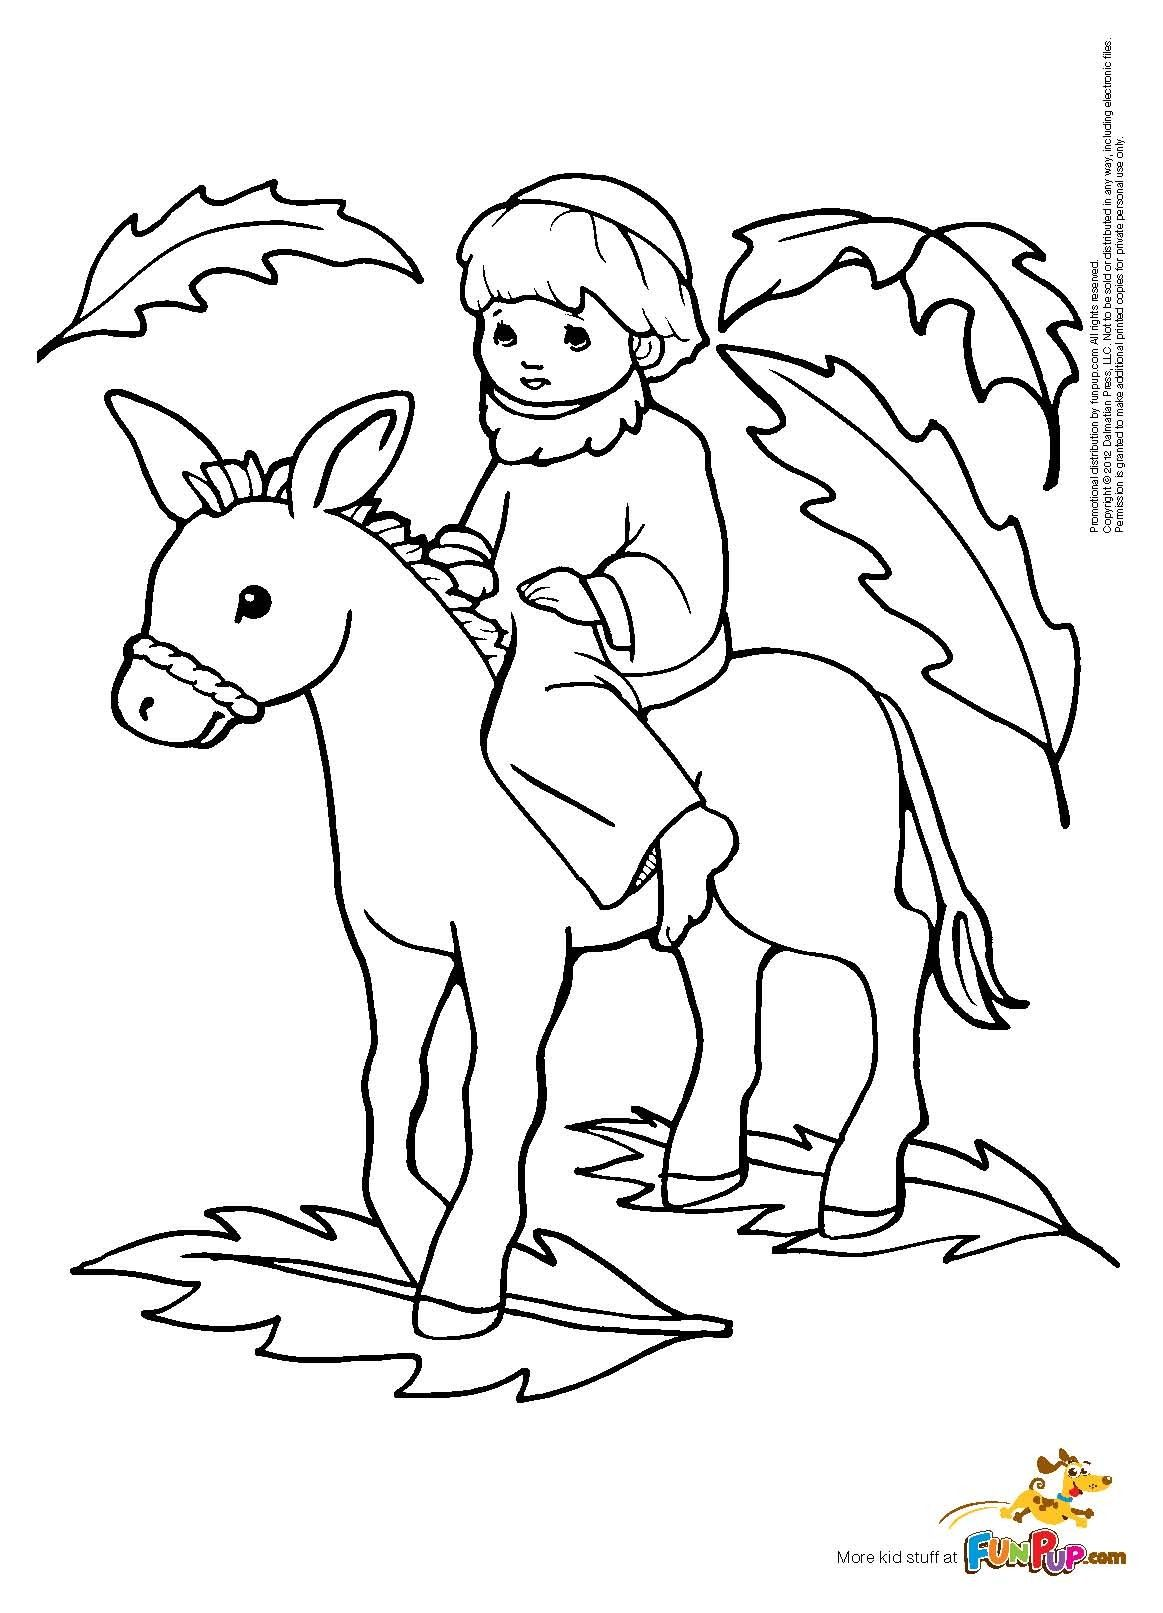 1163x1613 Palm Sunday Coloring Page Free Printable Coloring Pages